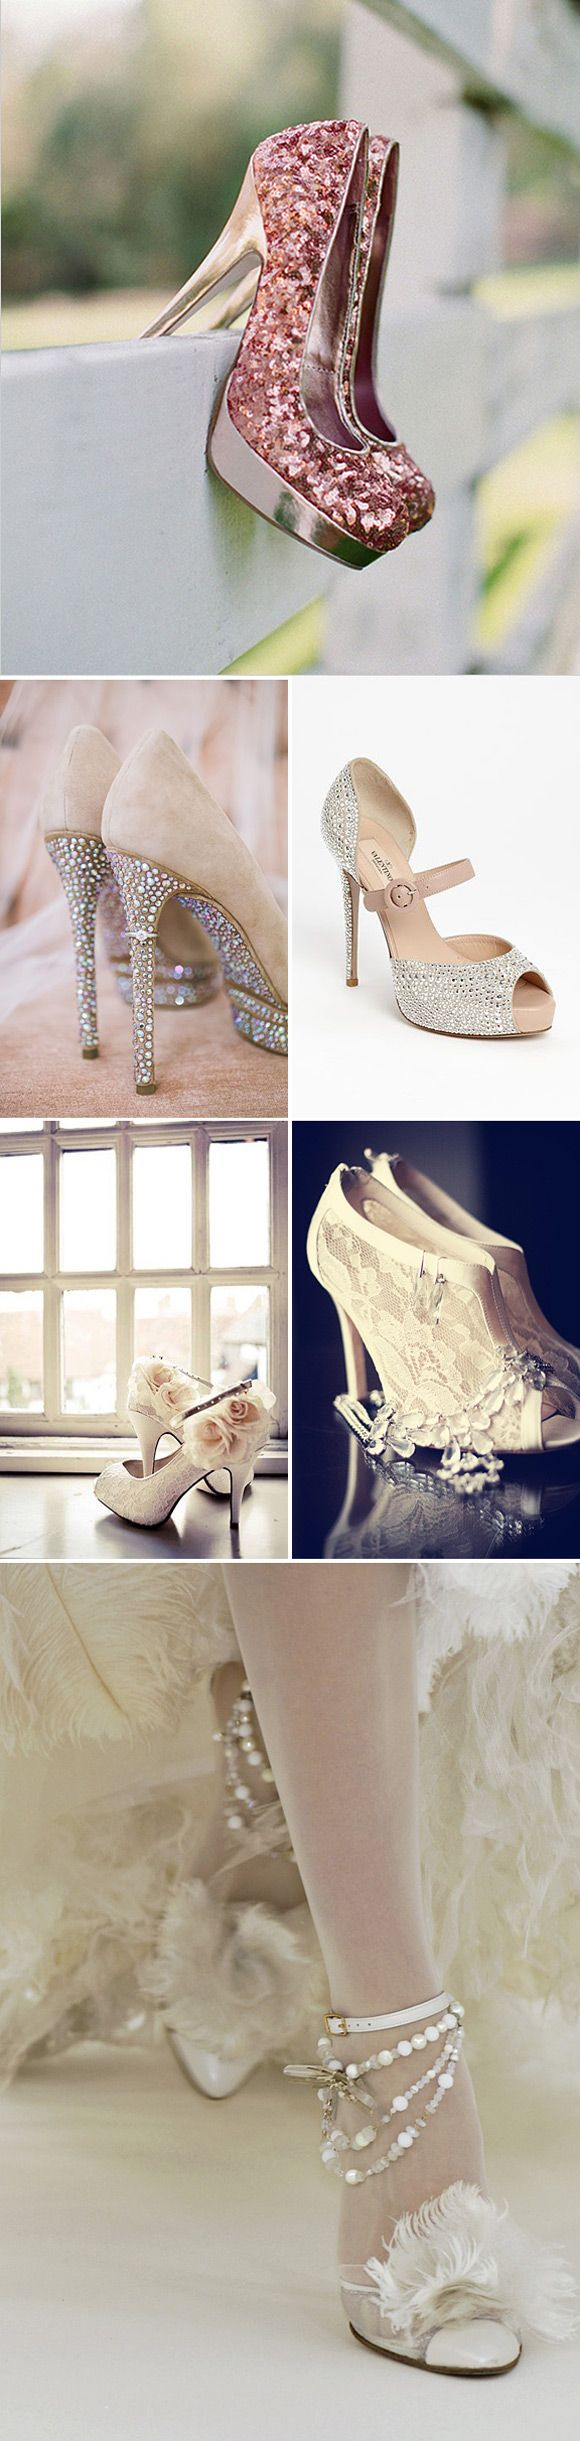 Zapatos de novia con taconazos de película High heel wedding shoes